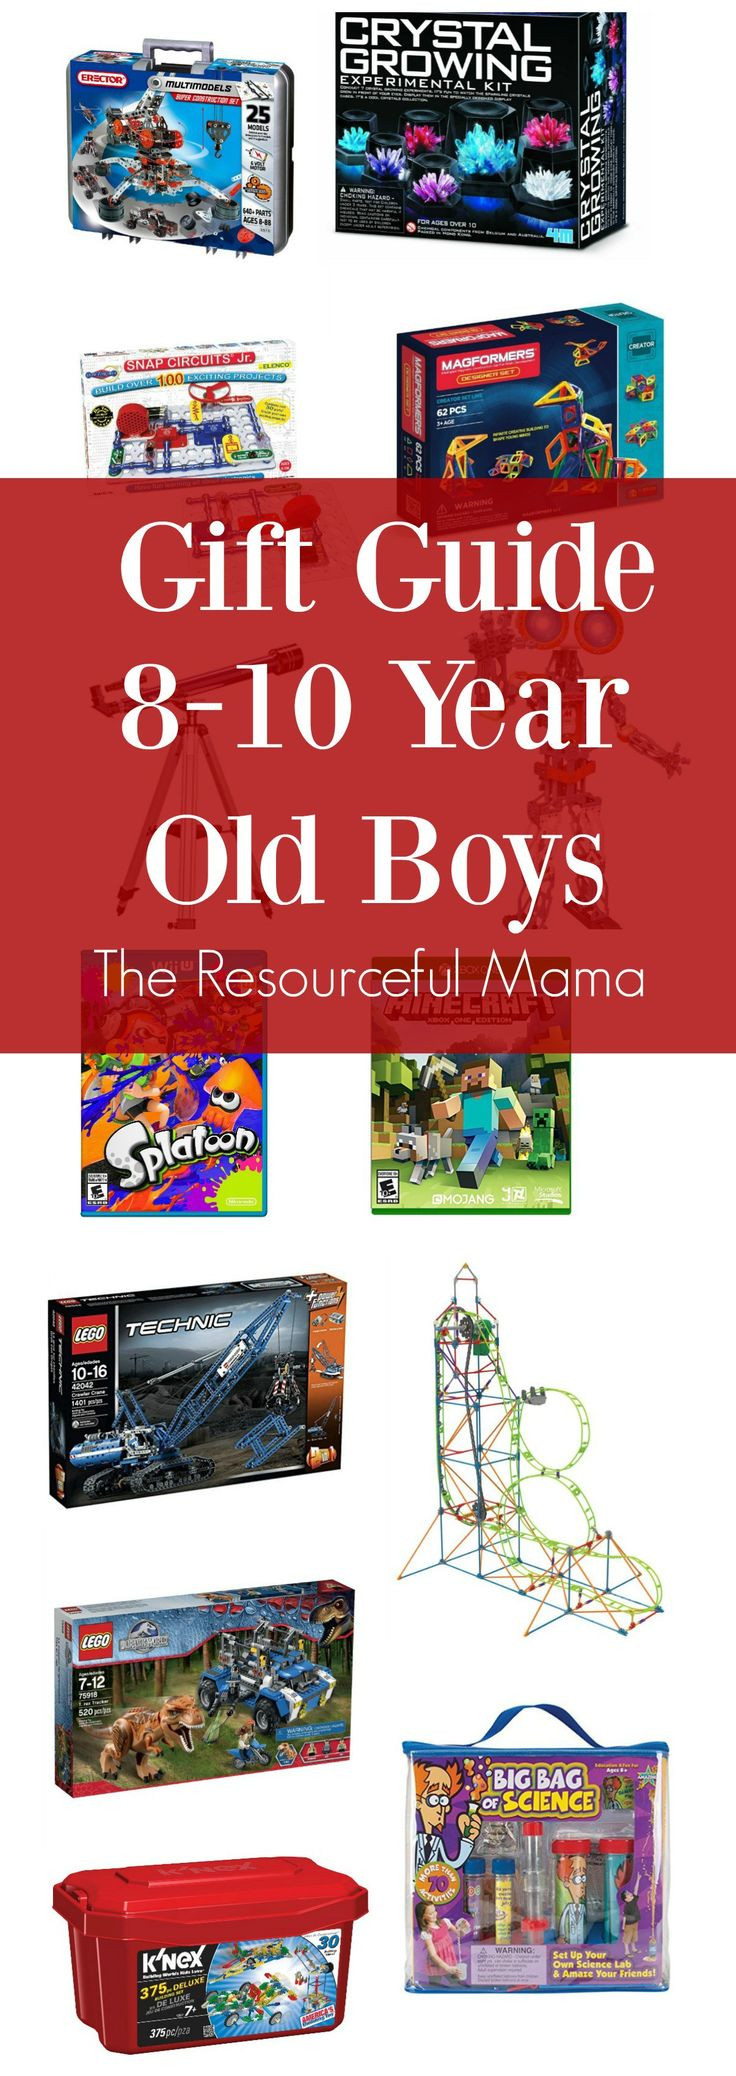 Best ideas about Gift Ideas For 8 Yr Old Boy . Save or Pin Gift Ideas 8 10 Year Old Boys Now.